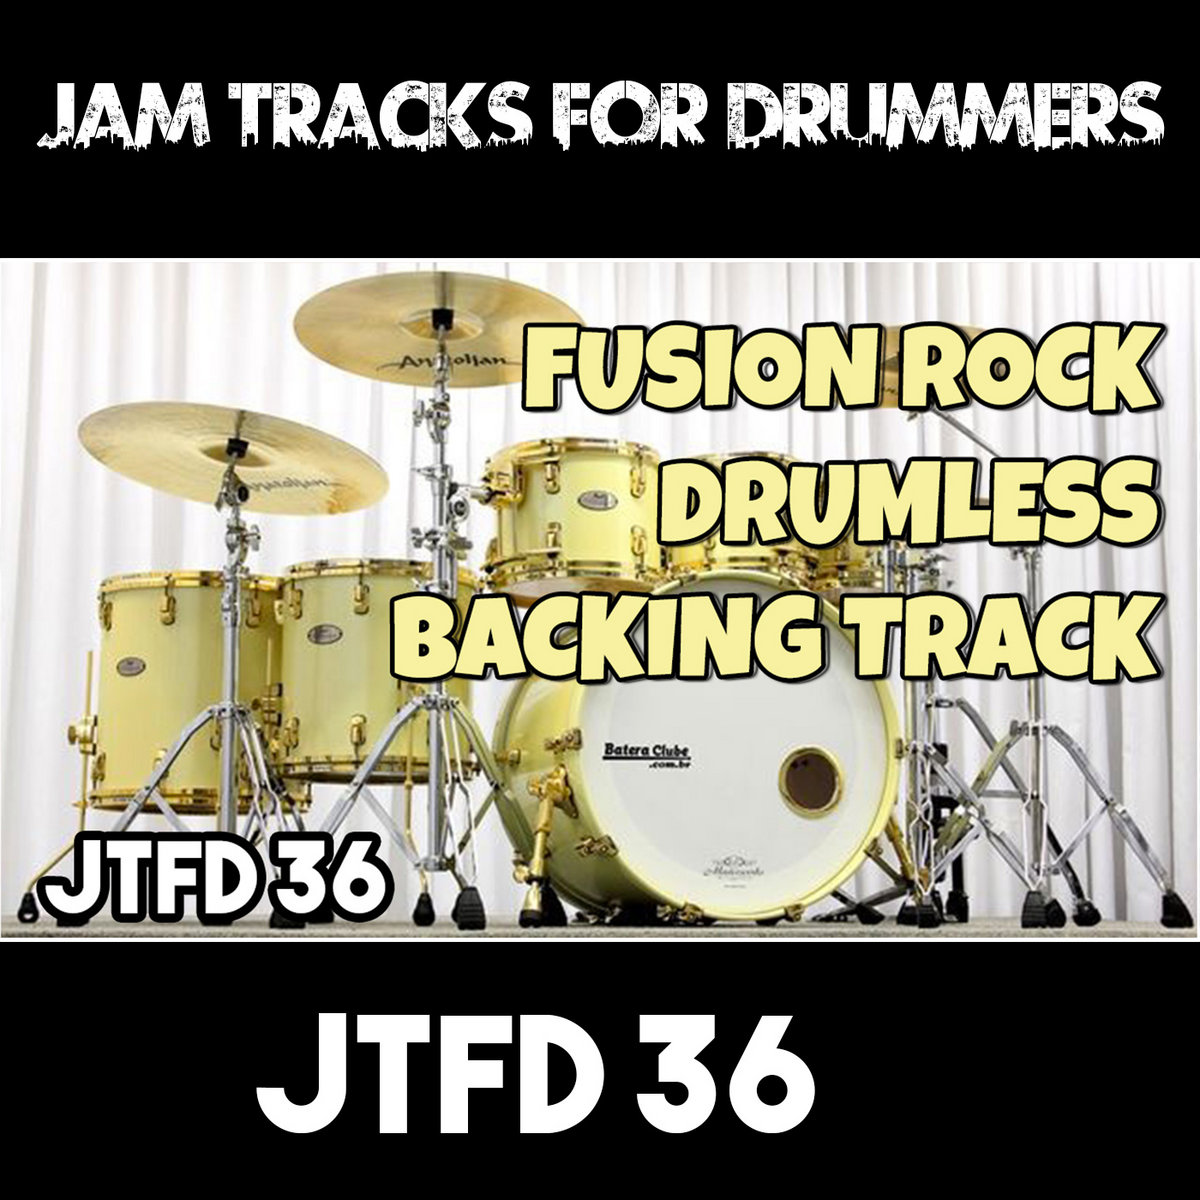 Fusion Rock | Drumless Backing Track For Drummers | #BTFD 36 | Jam